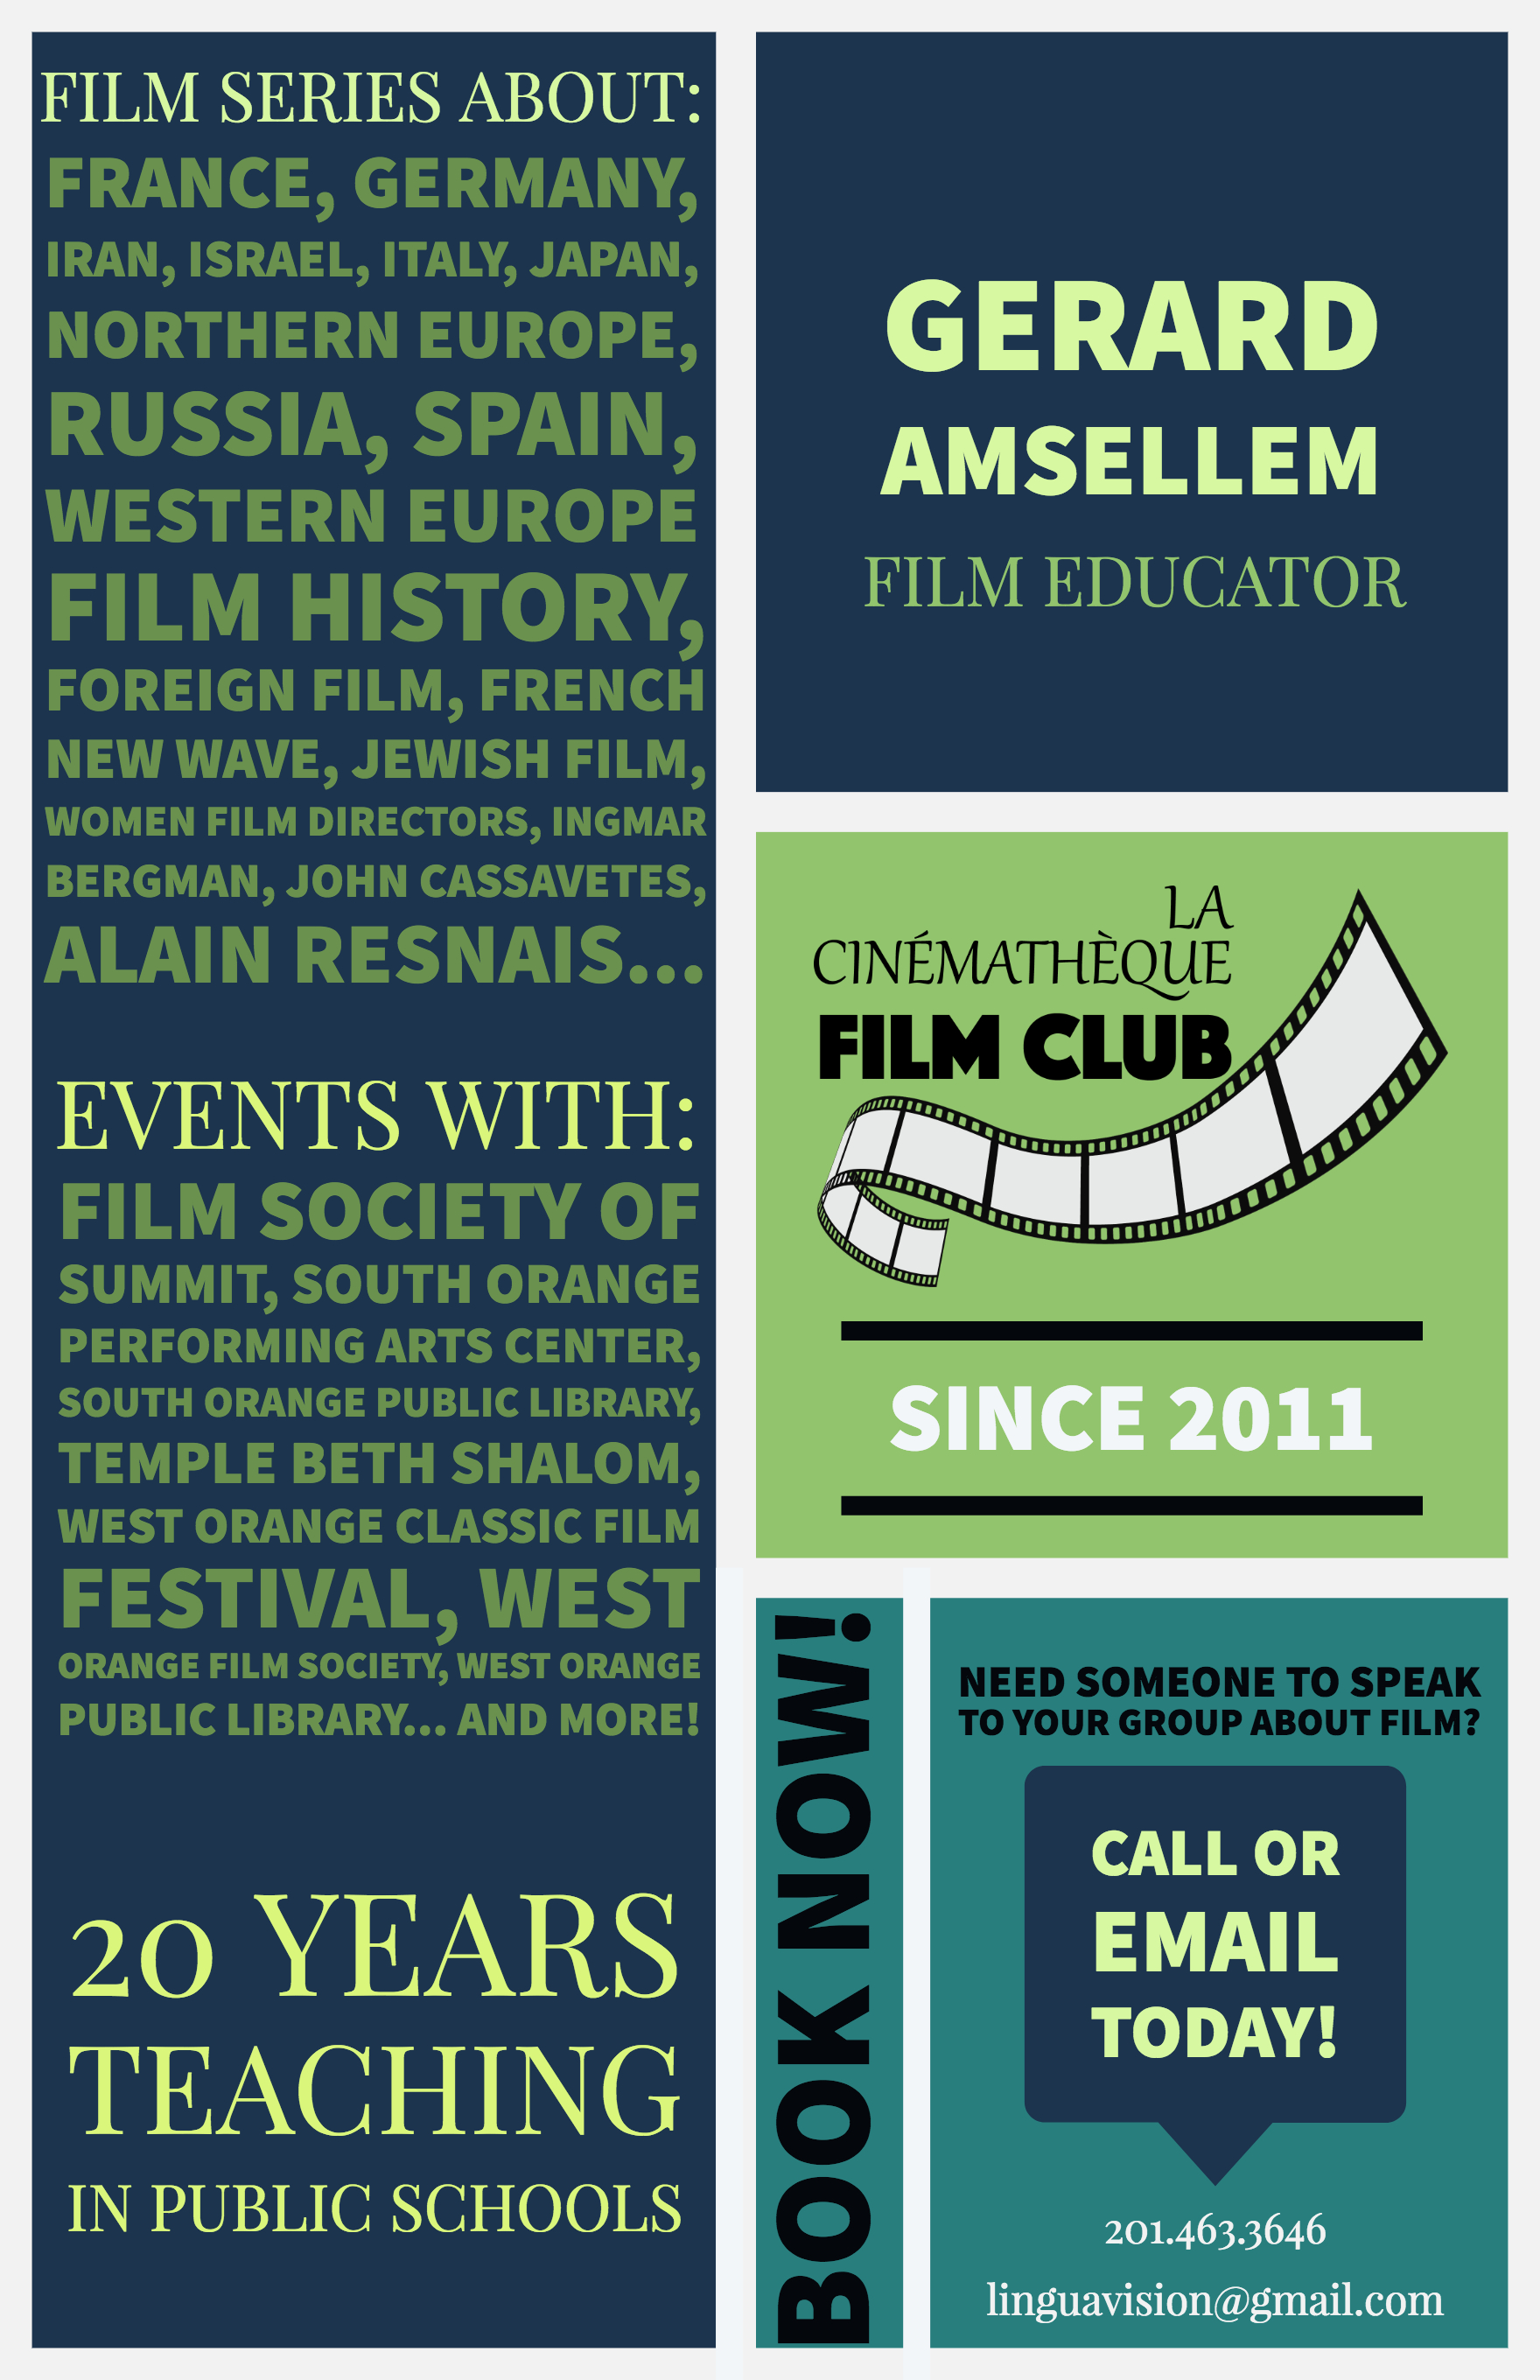 ga film moderator graphic 1.jpg